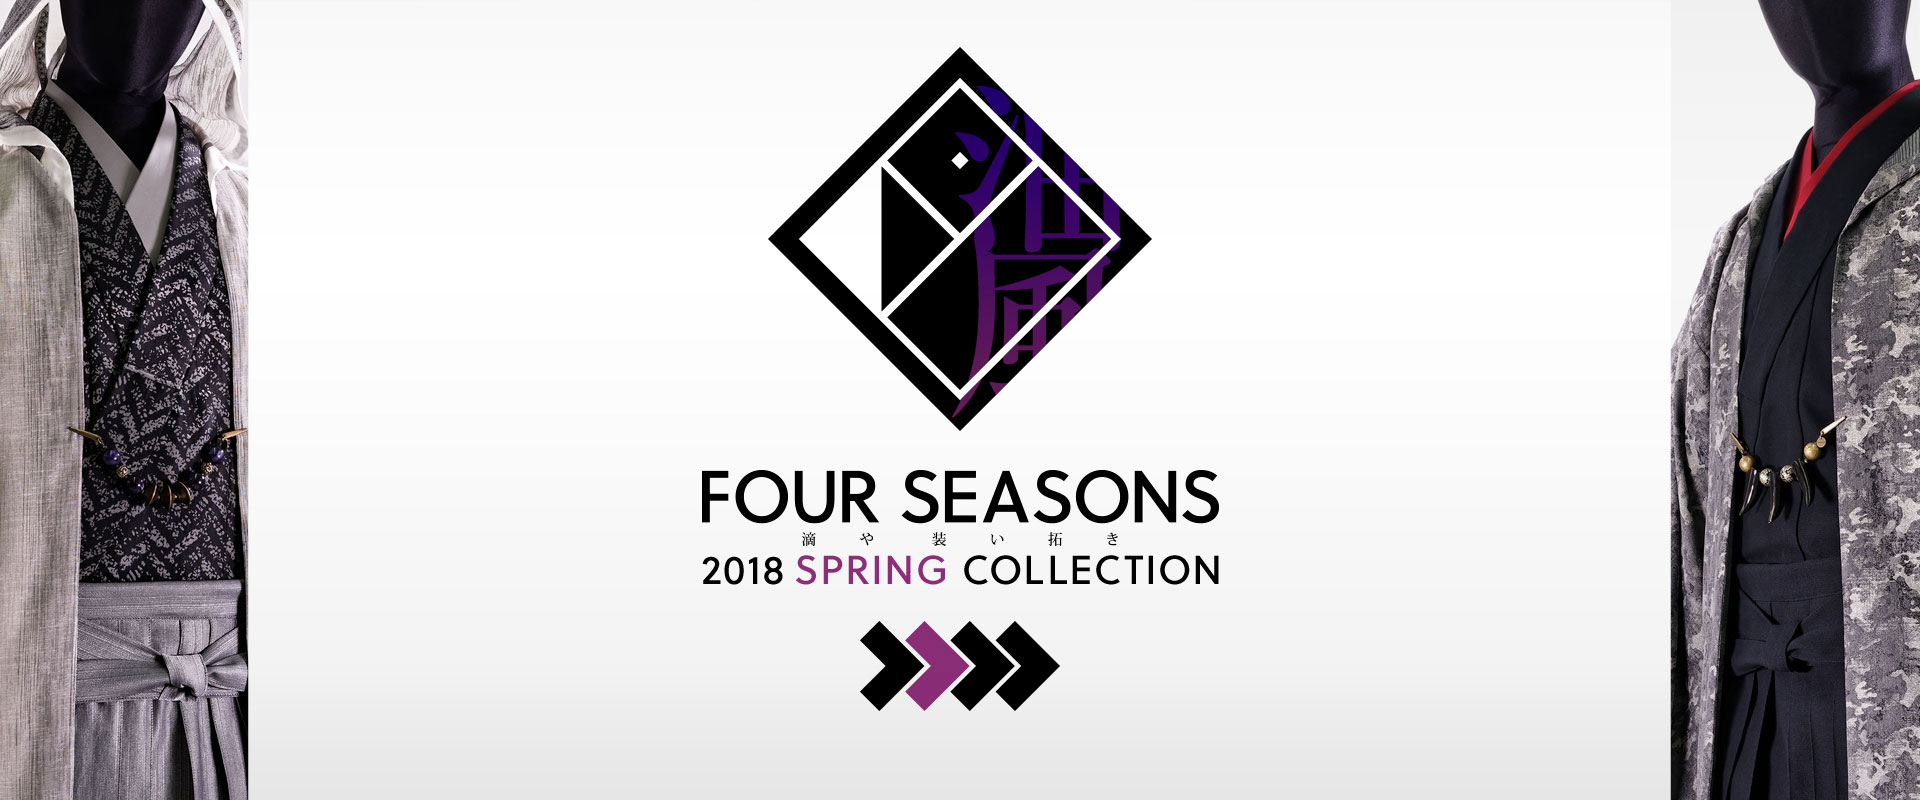 FOUR SEASONS 2018 SPRING COLLECTION